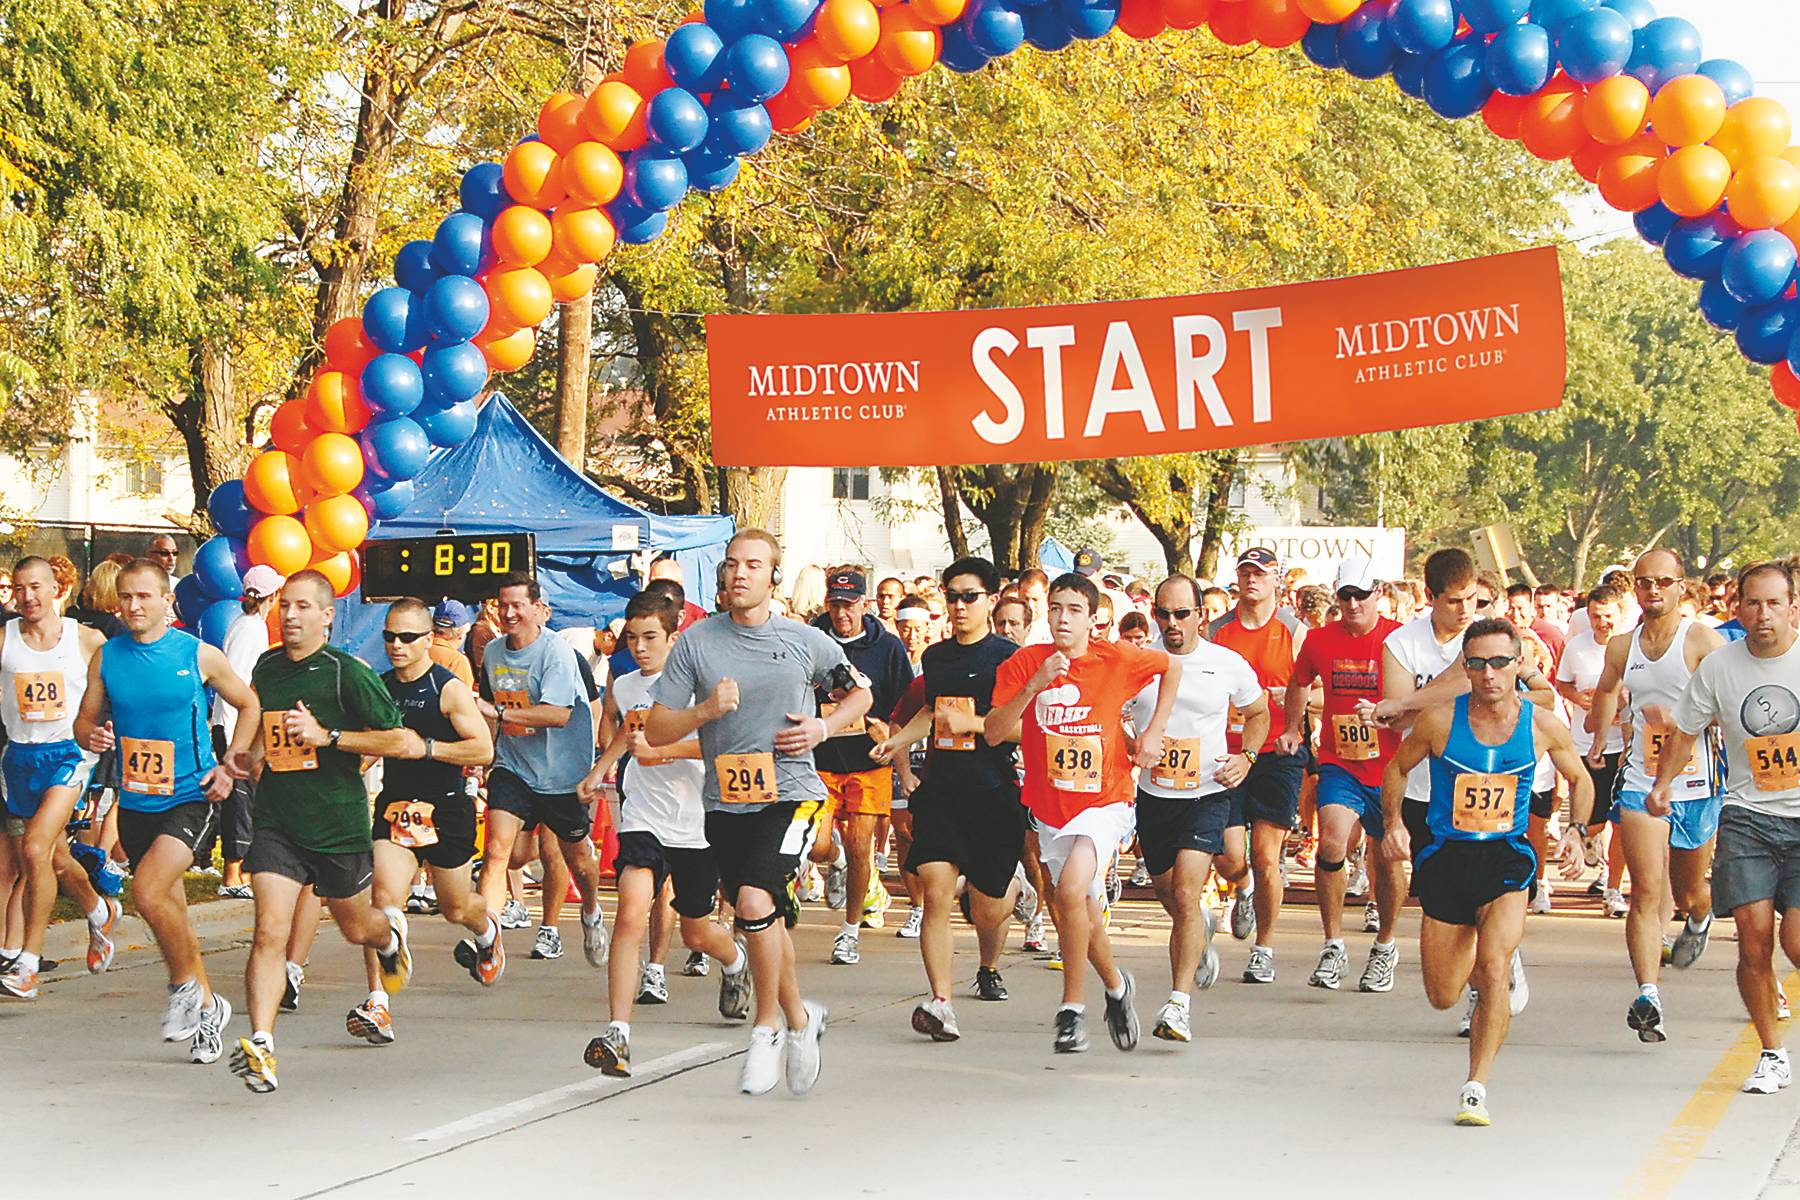 Since inception in 2002, the Midtown 5K Run & Walk has raised more than $300,000 for Bears Care, the official charity of the Chicago Bears. Richard Klein Photography